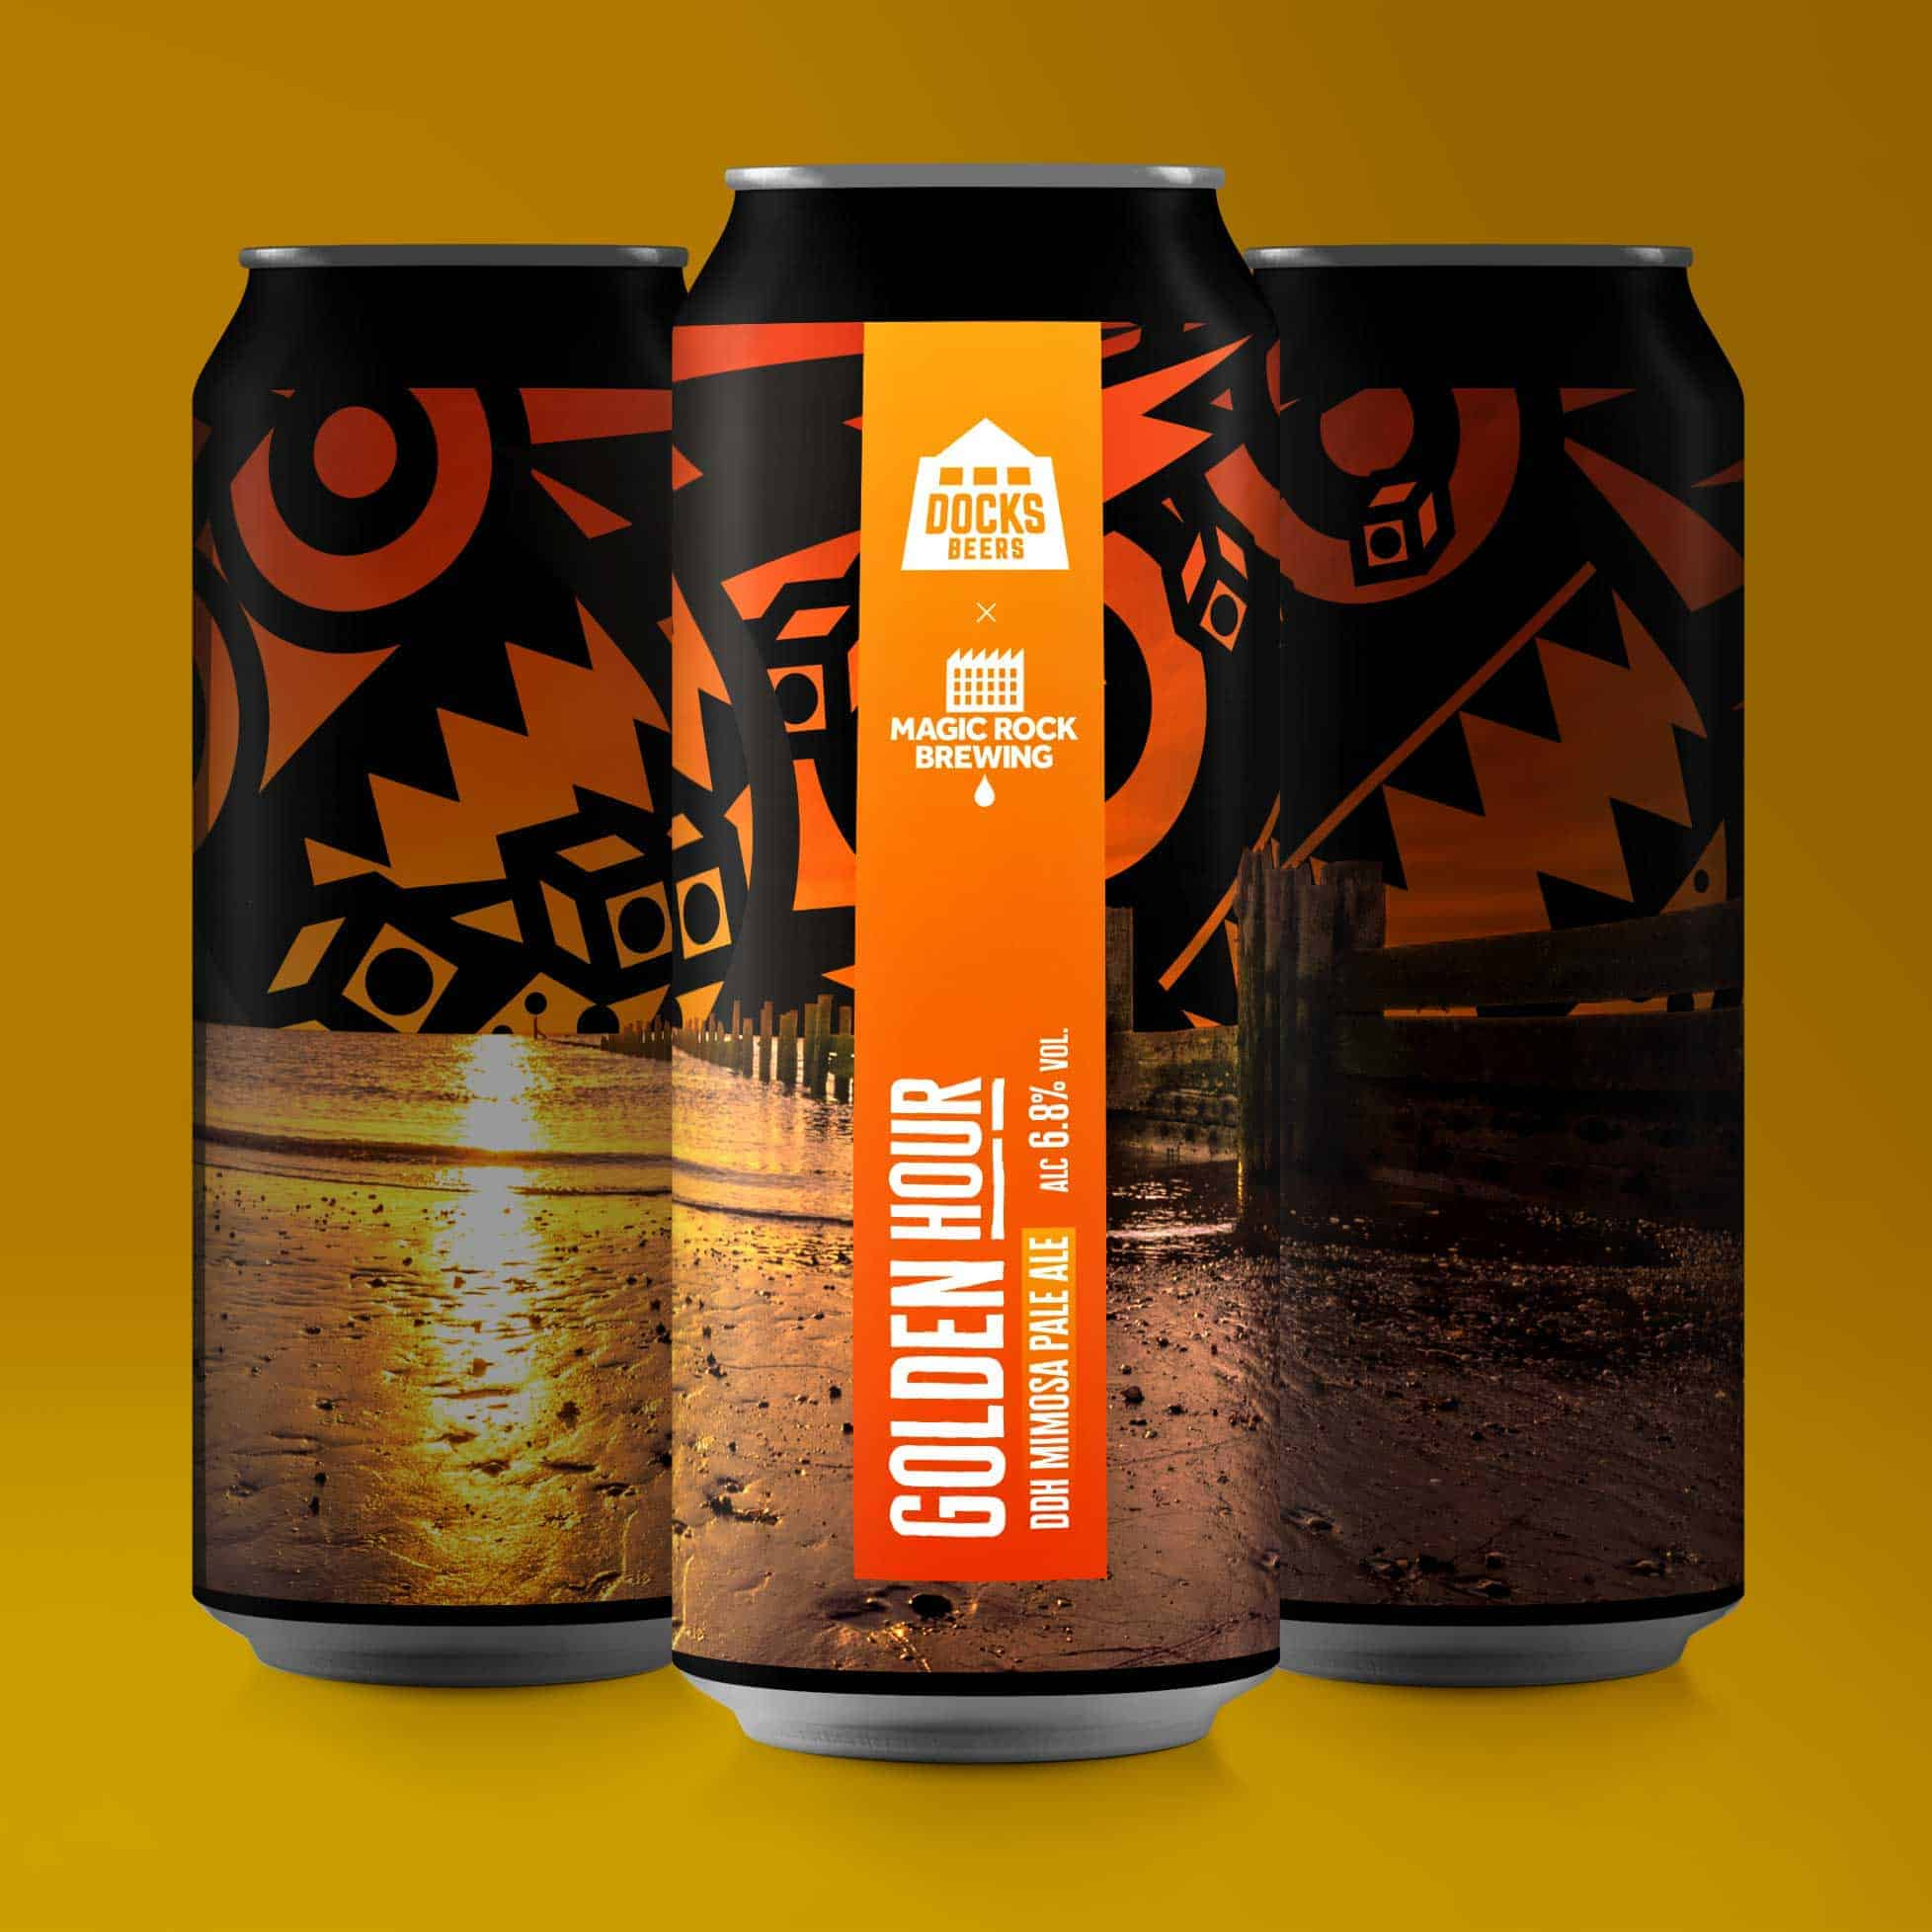 Docks Beers x Magic Rock Golden Hour DDH Mimosa Pale Ale cans